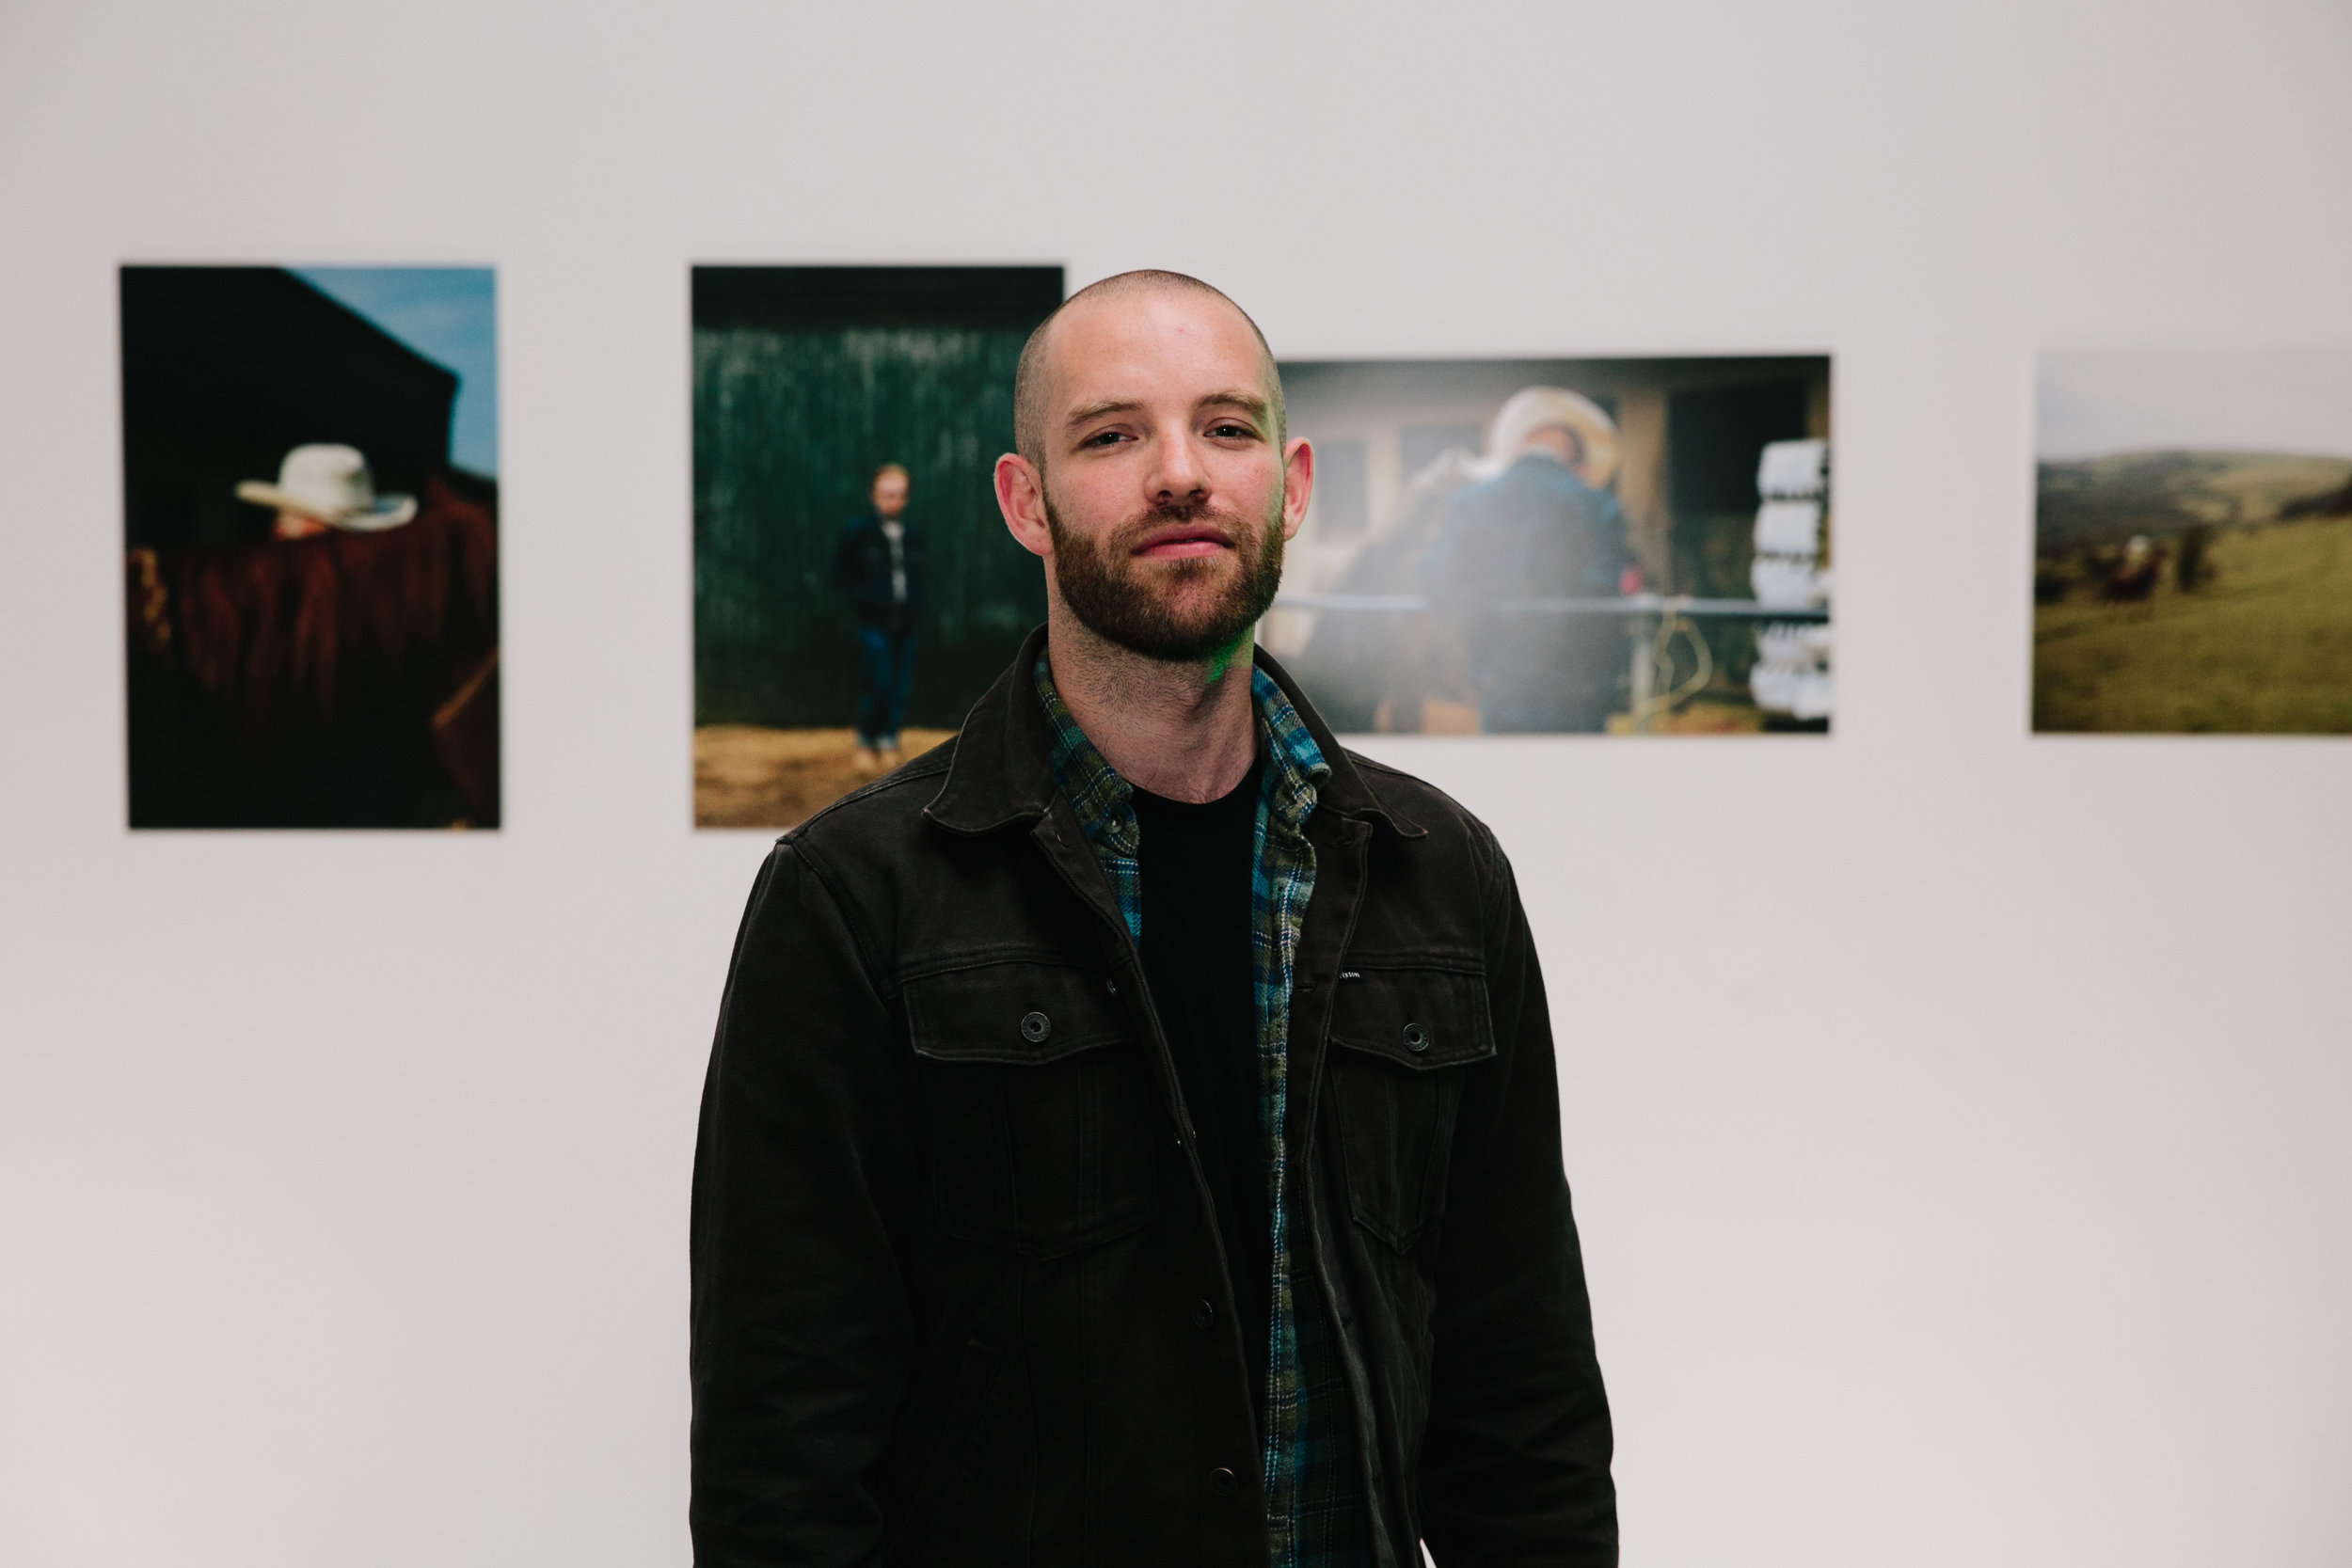 Andy in front of his images.